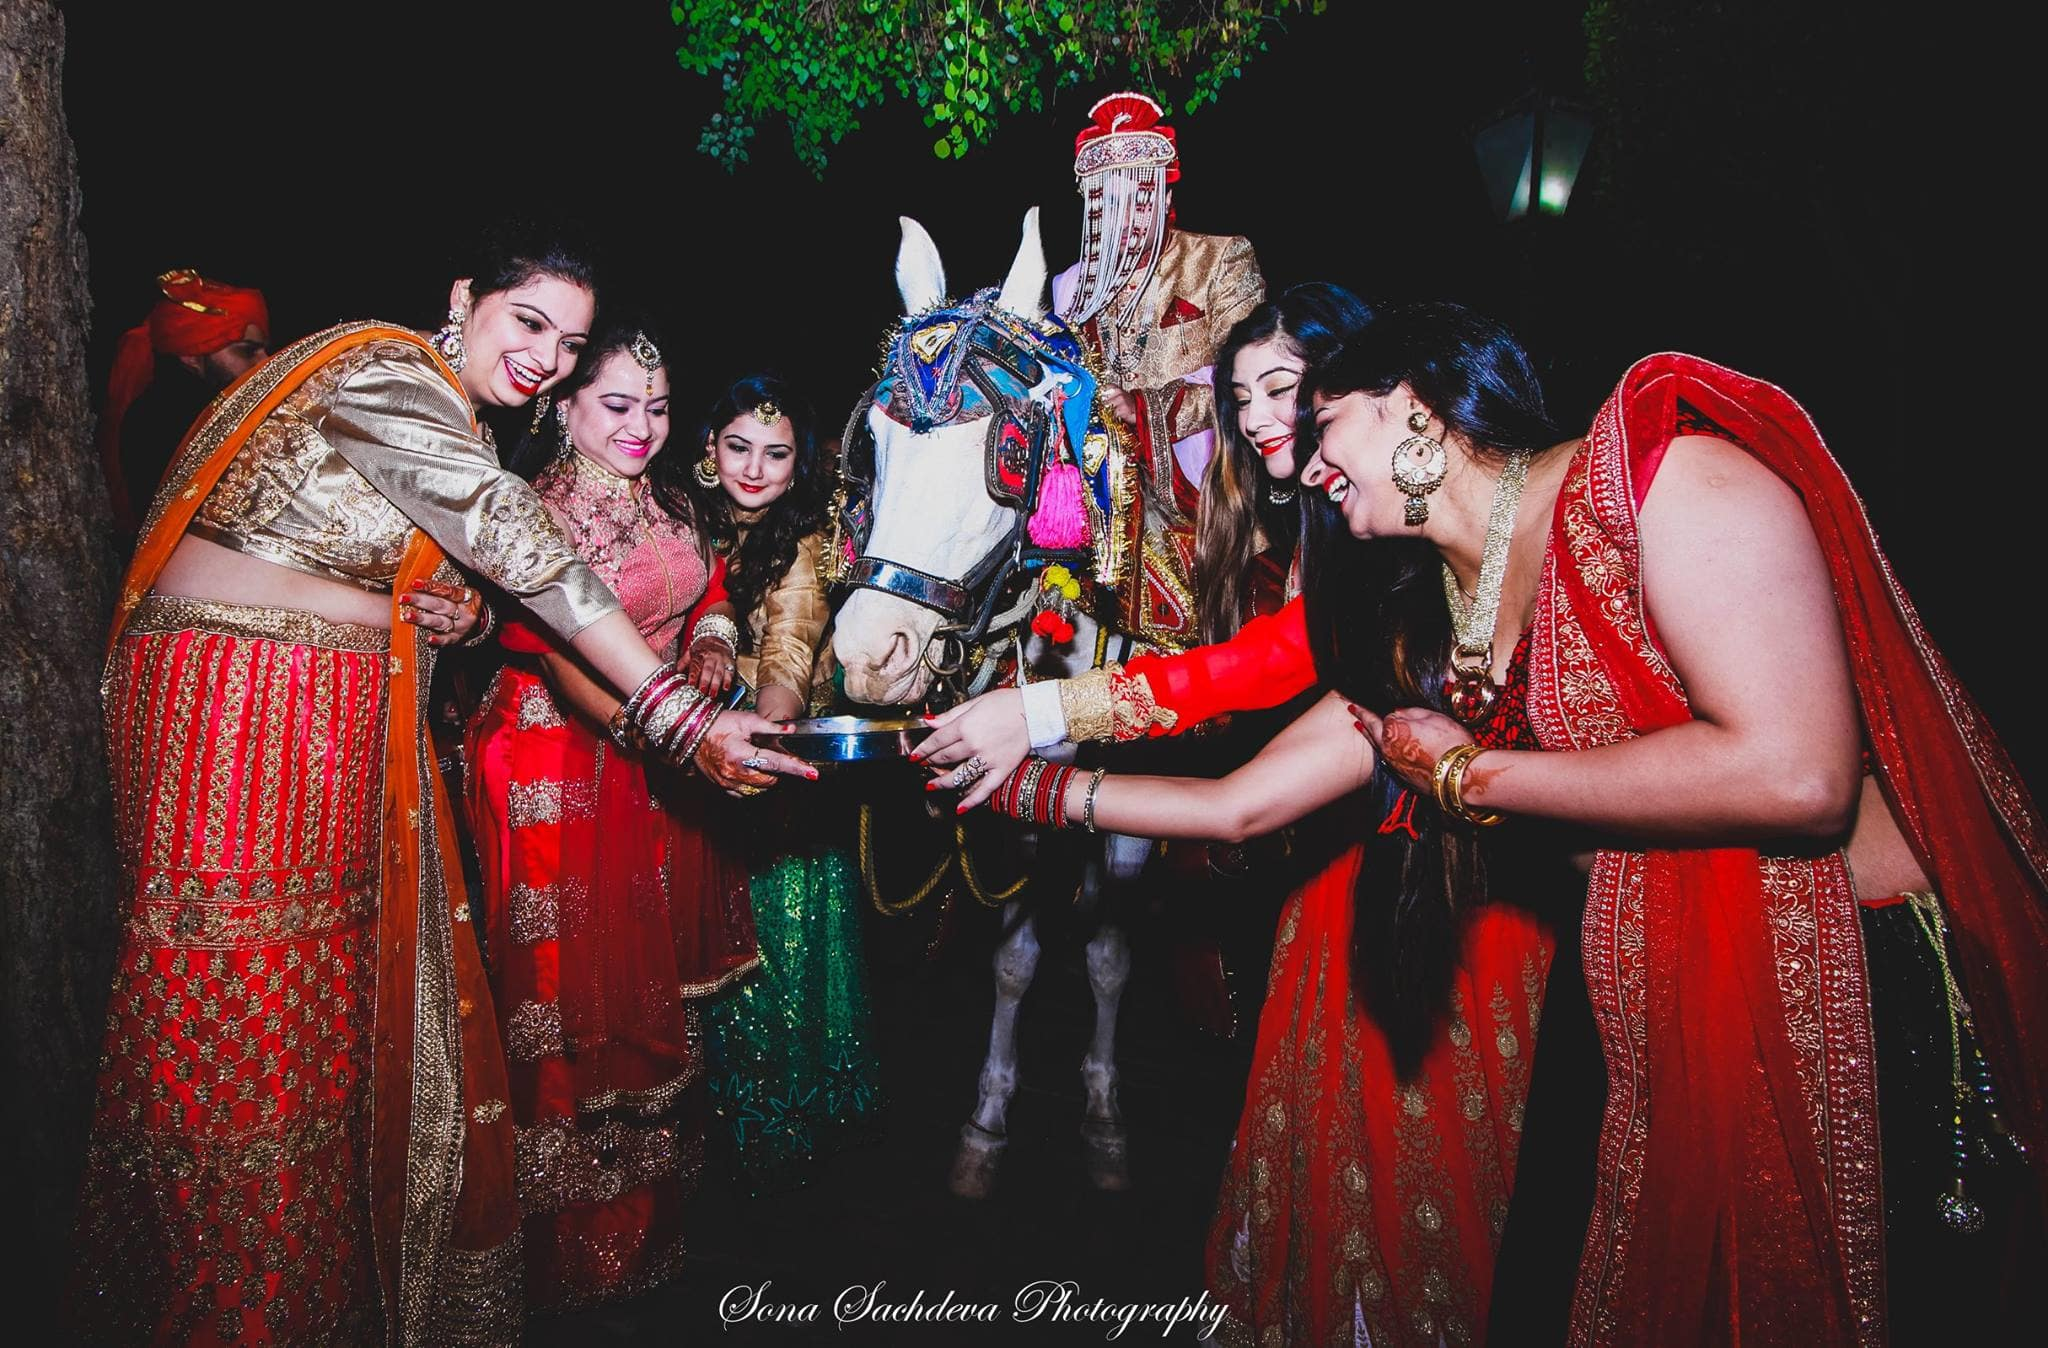 wedding rituals:sona sachdeva photography